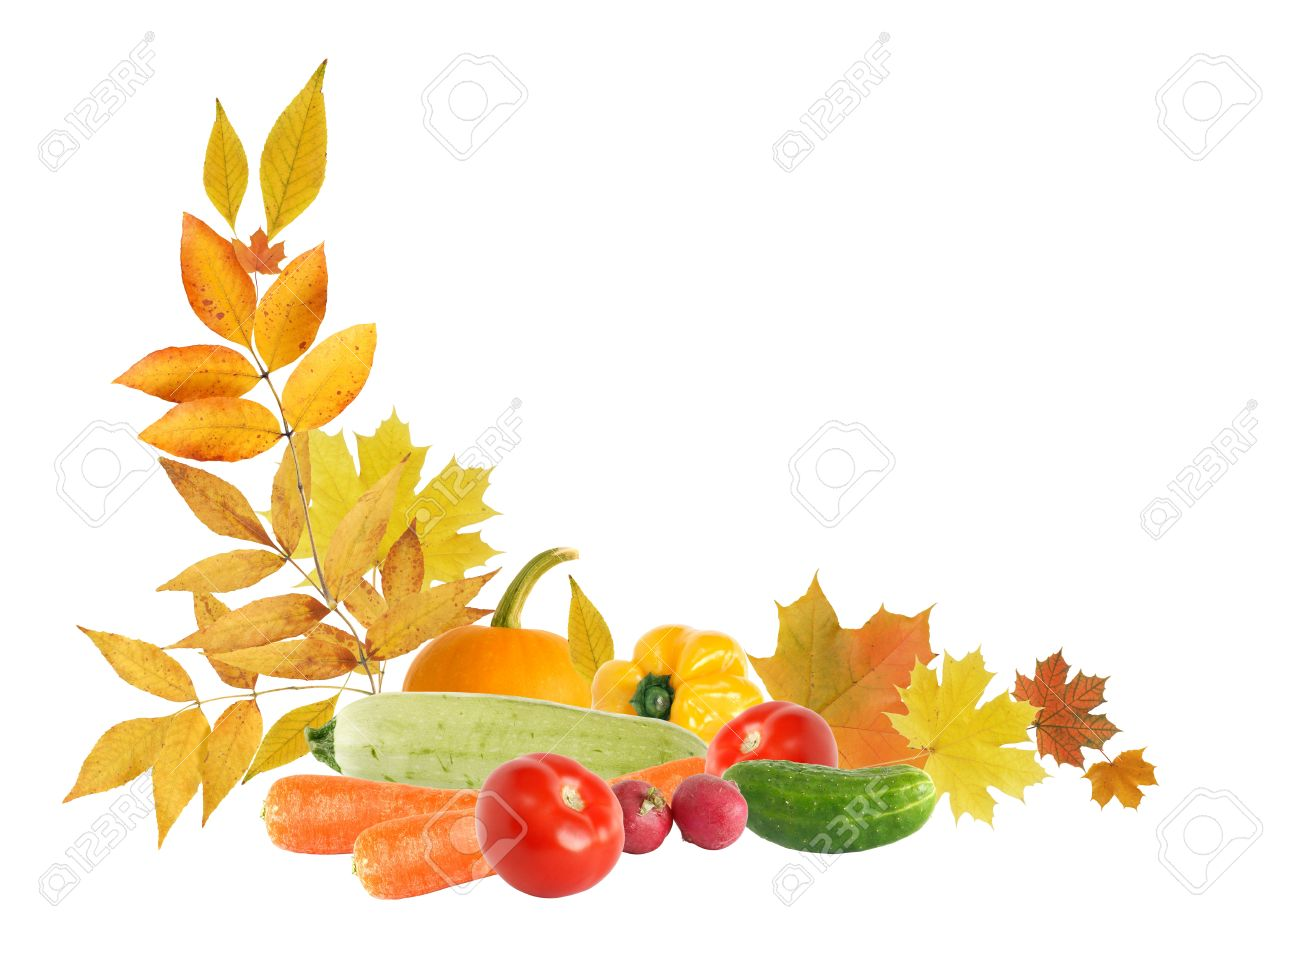 Harvest concept. Autumn leaves border with various vegetables...